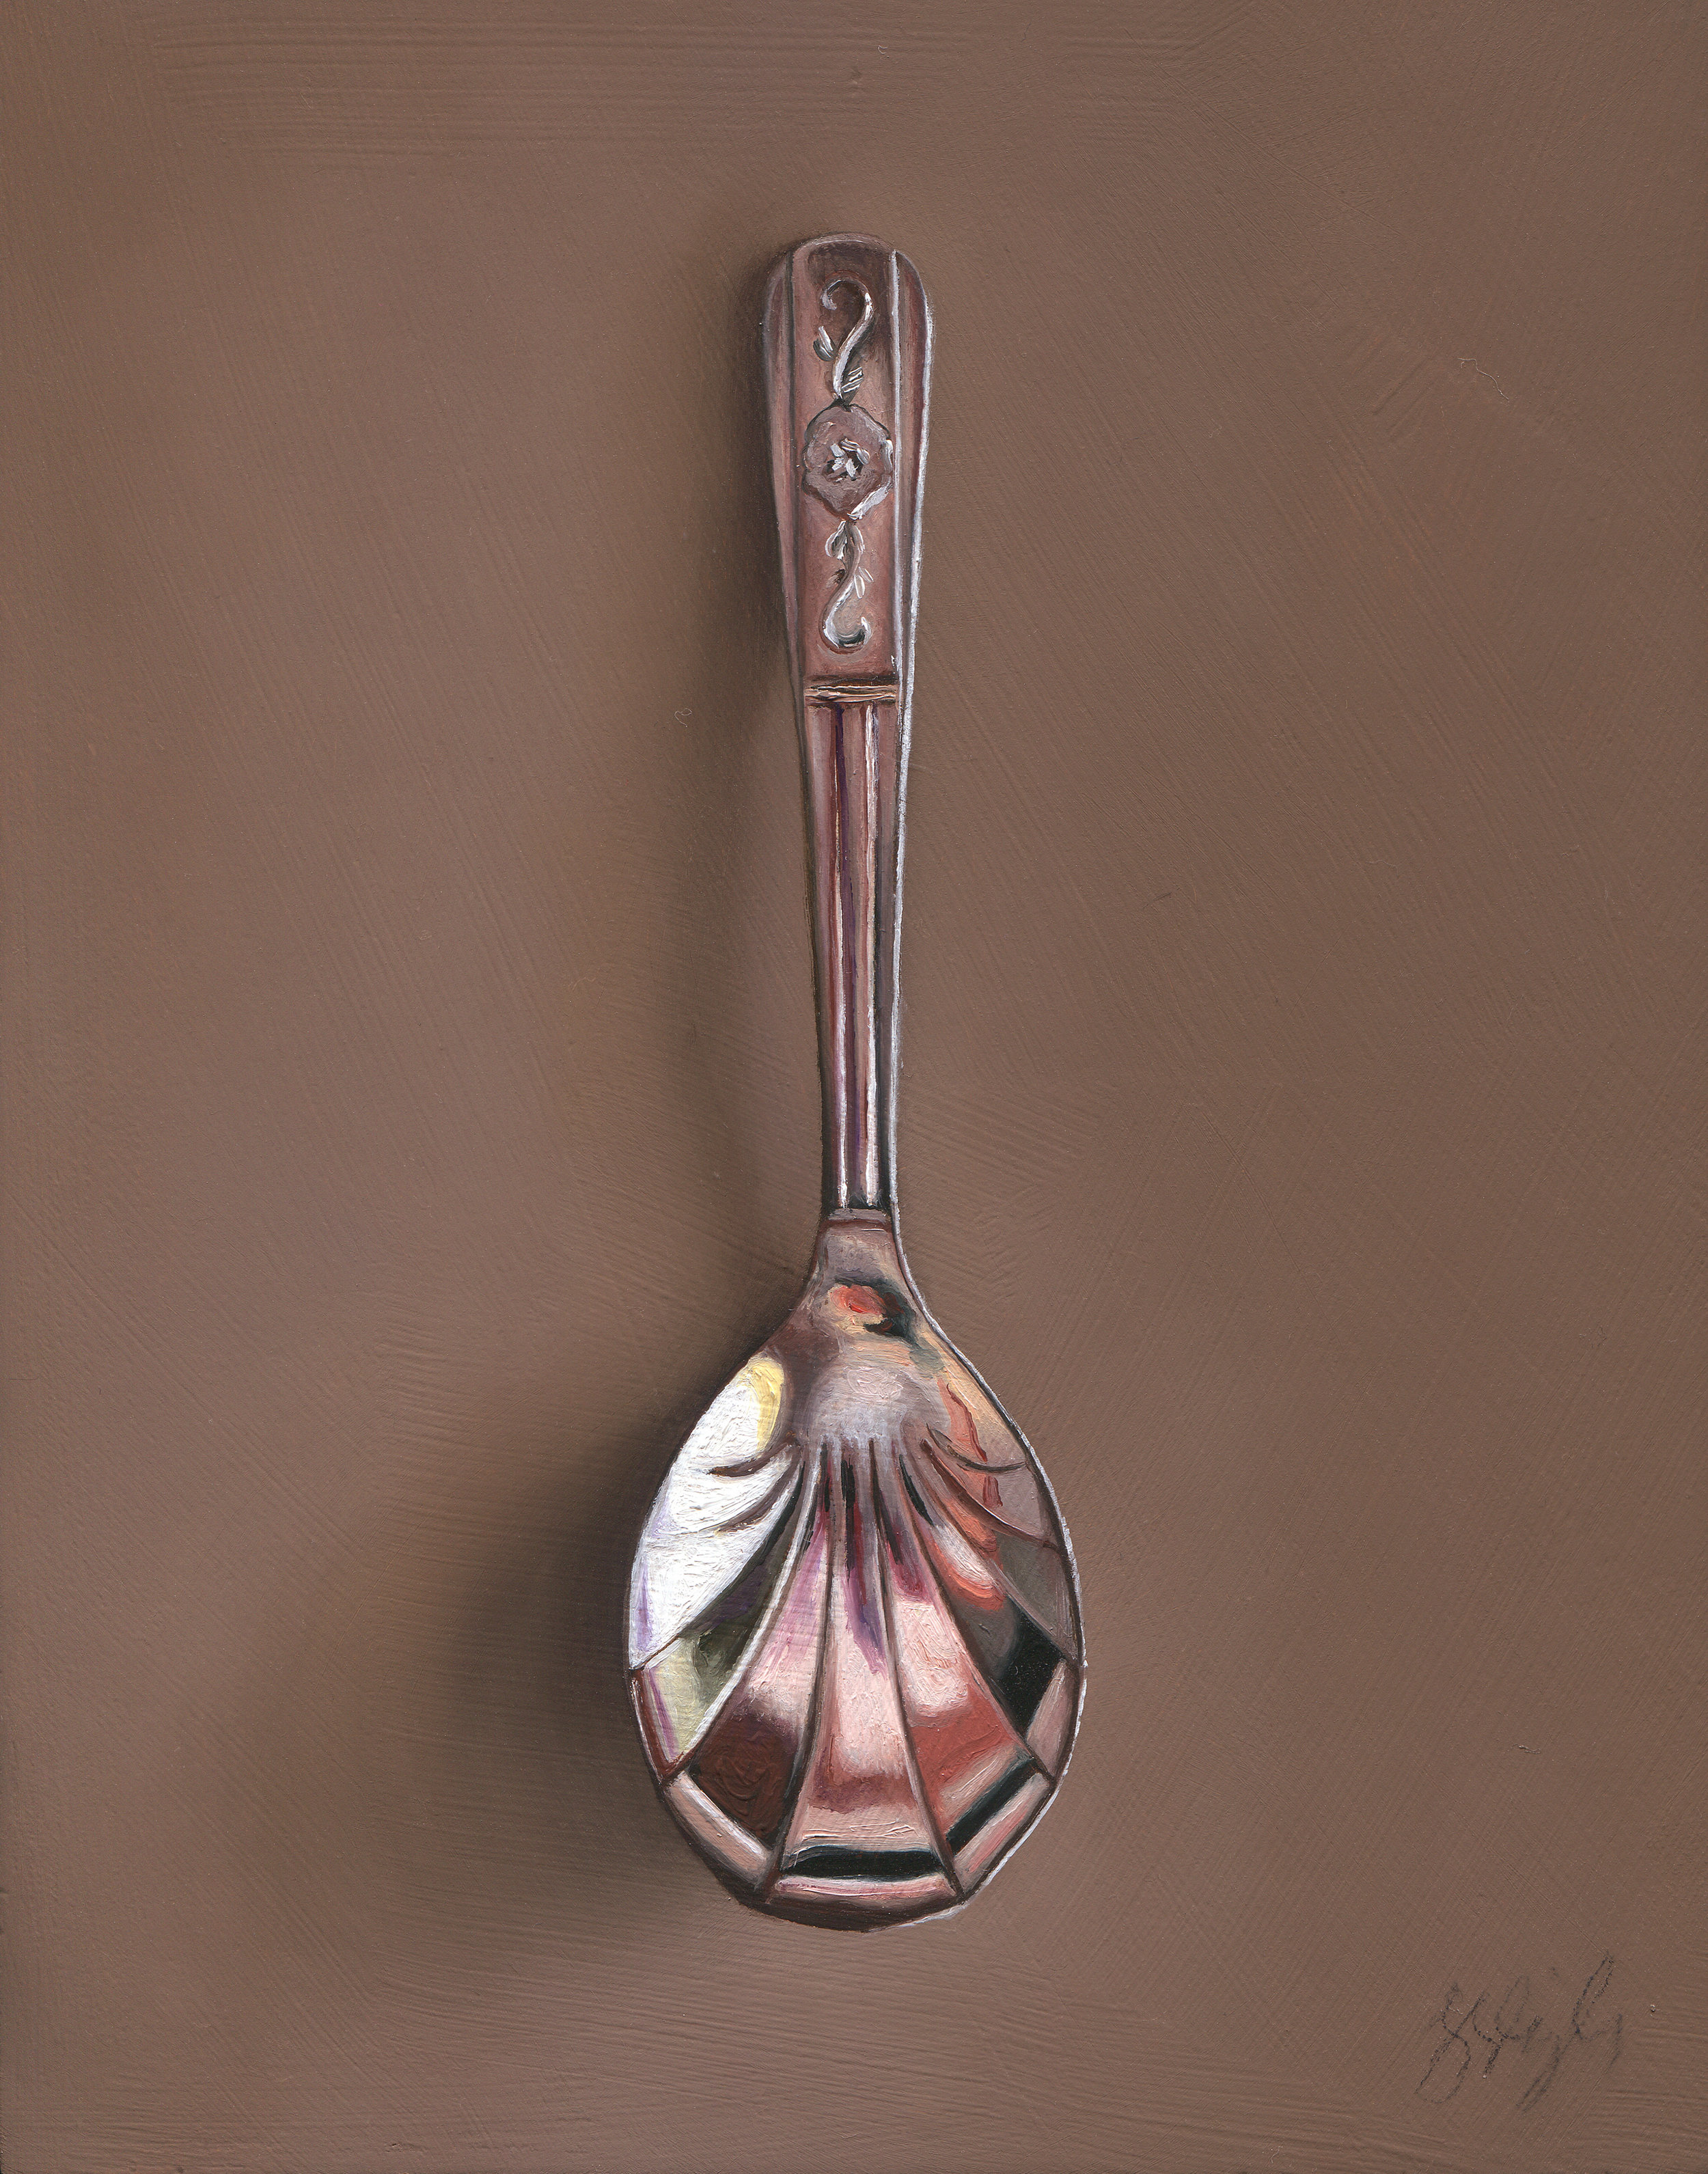 "Silver Spoon #94, The Chorine Oil on panel, 2015. 7x5.5"" Available at  George Billis Gallery,  New York"